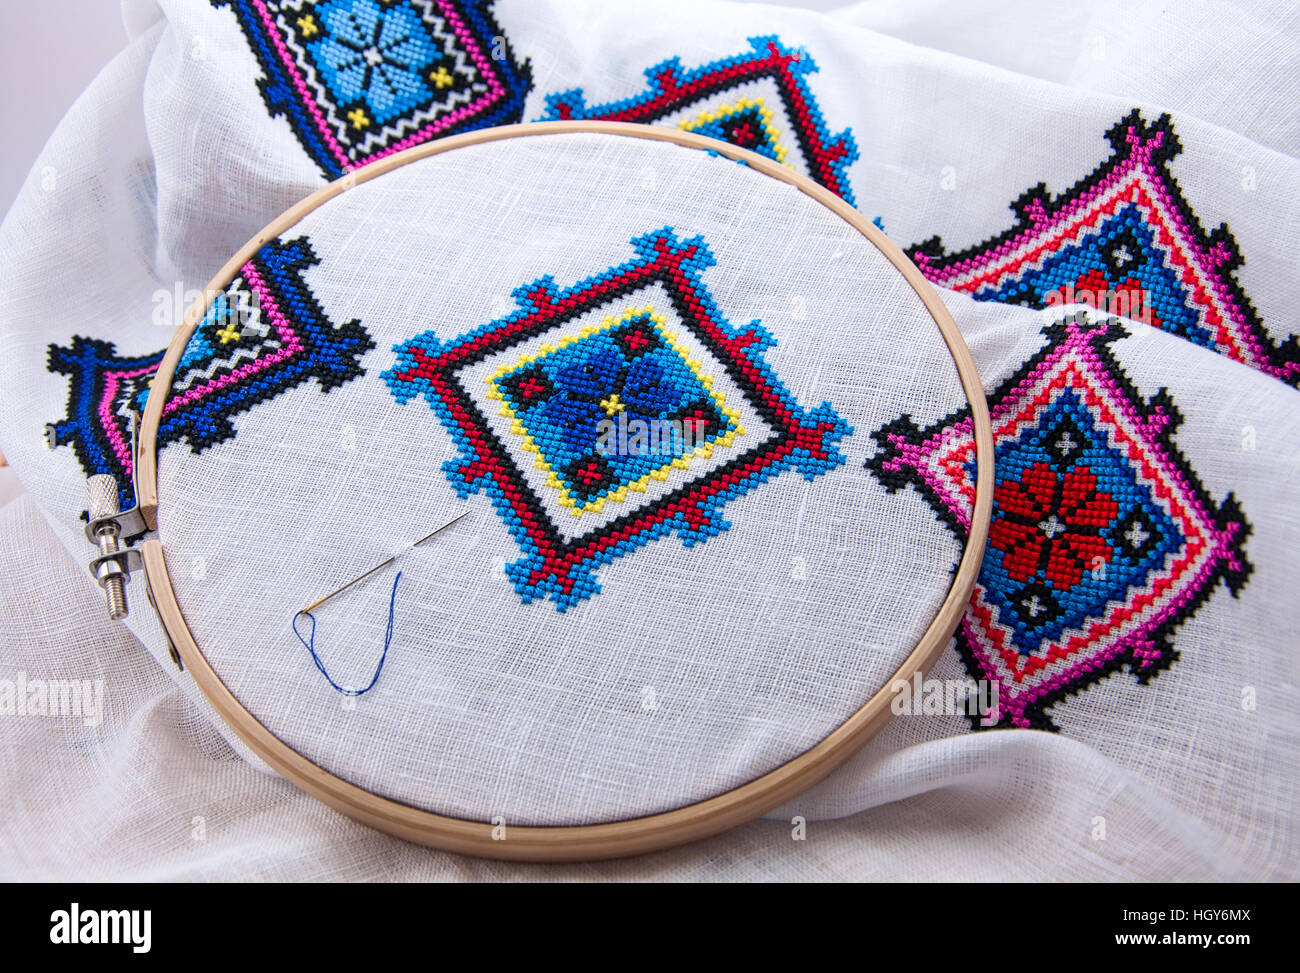 Traditional Slavic geometric pattern embroidered cross stitch multicolored thread, white fabric in the wooden embroidery - Stock Image